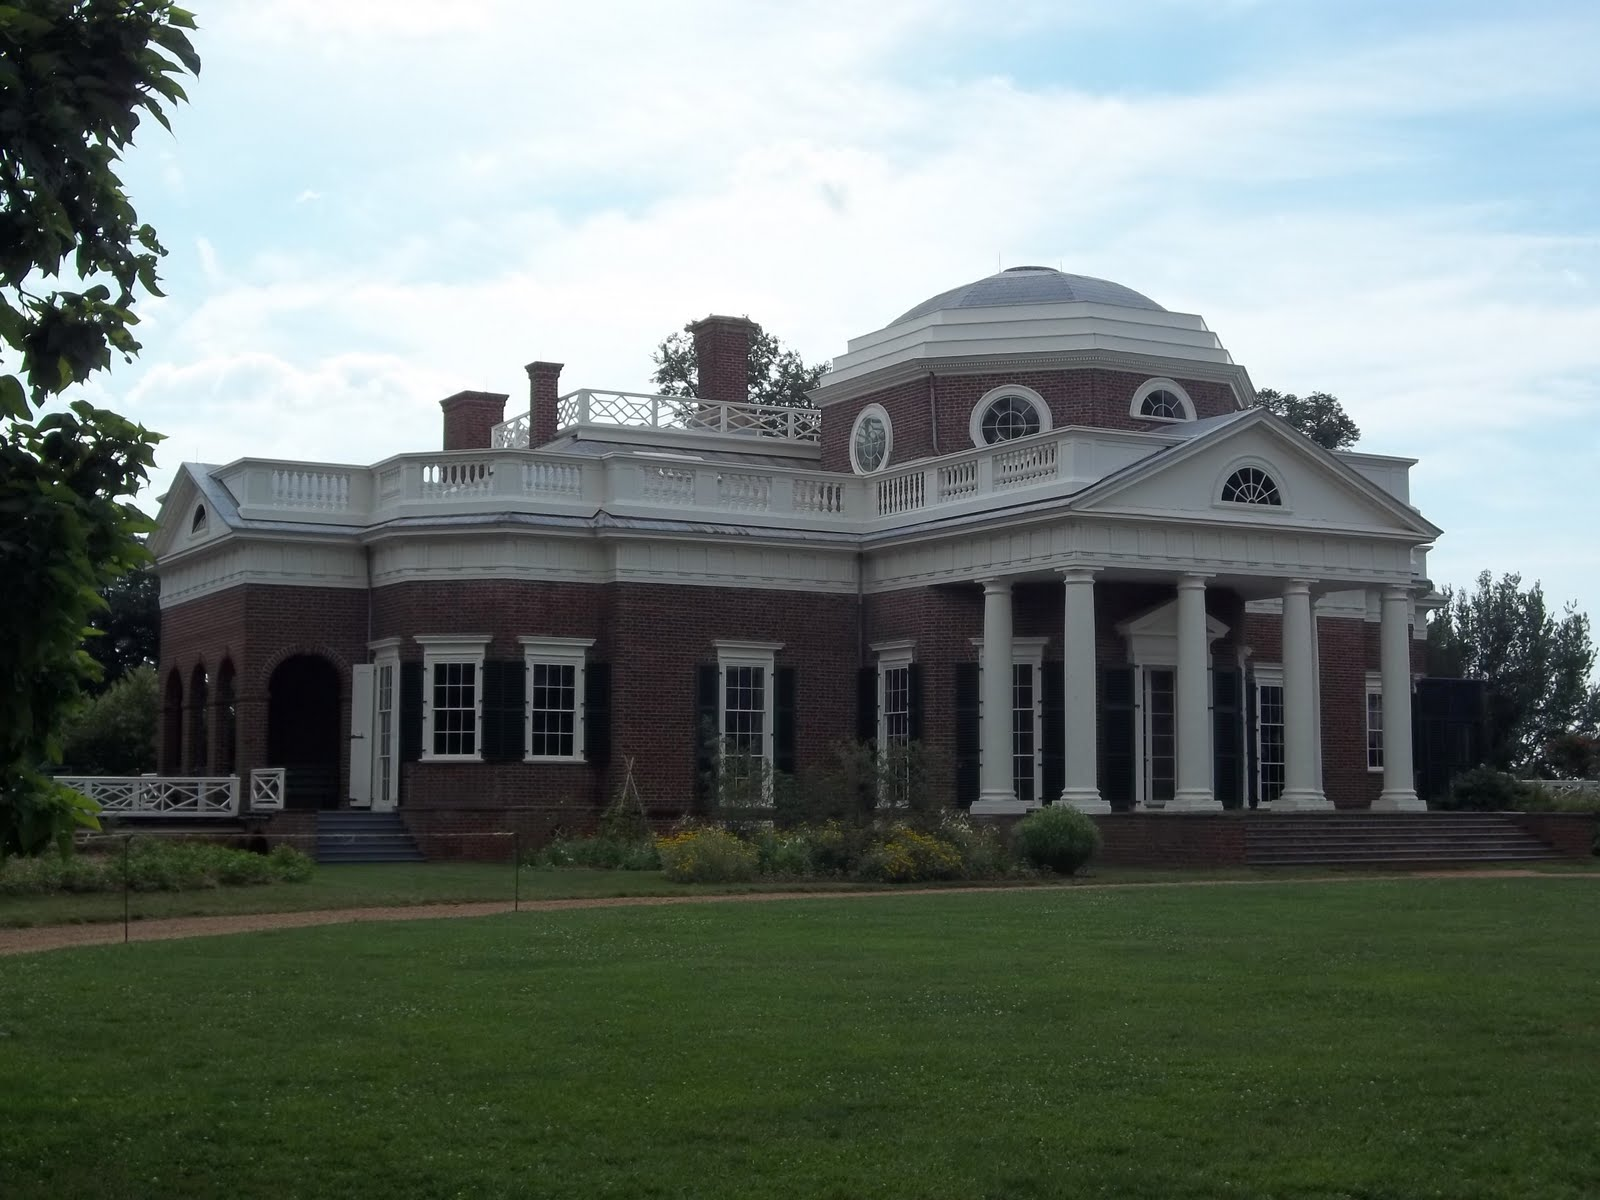 Mz huby 39 s history and genie journeys monticello thomas jefferson 39 s home